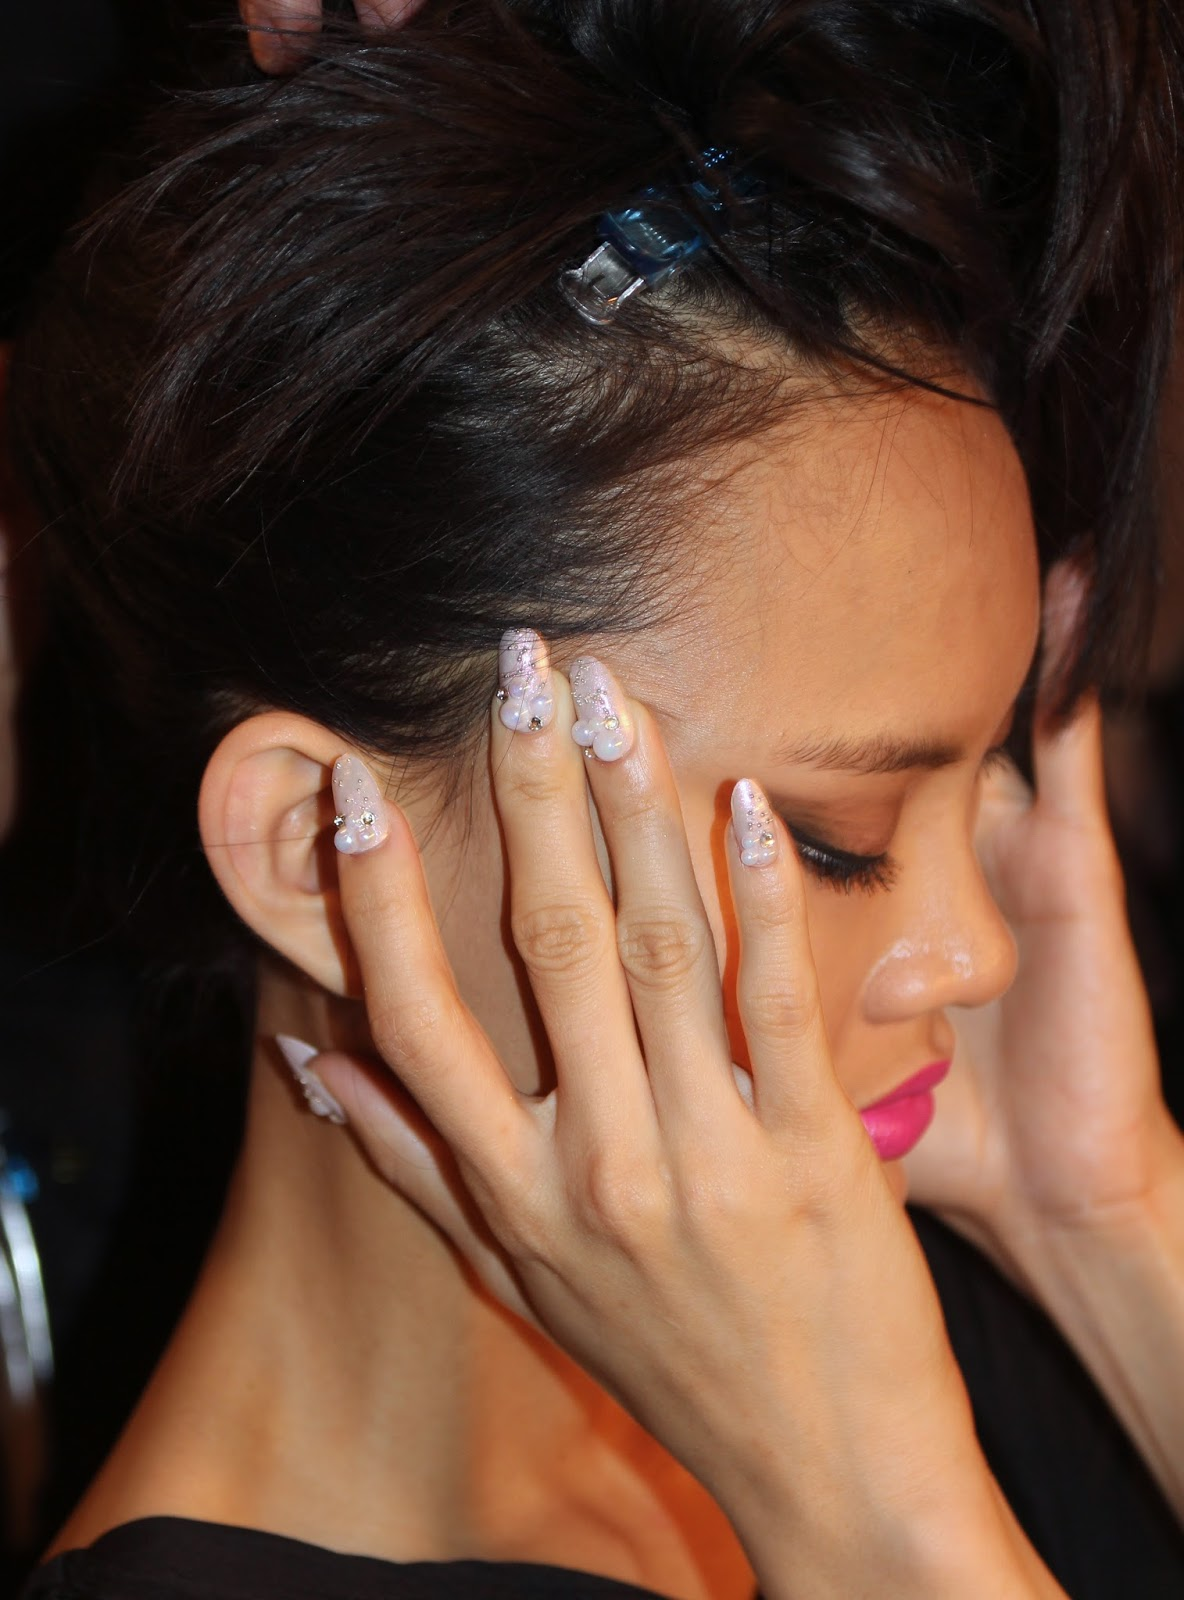 Manis…made of Pre-shaped Nails